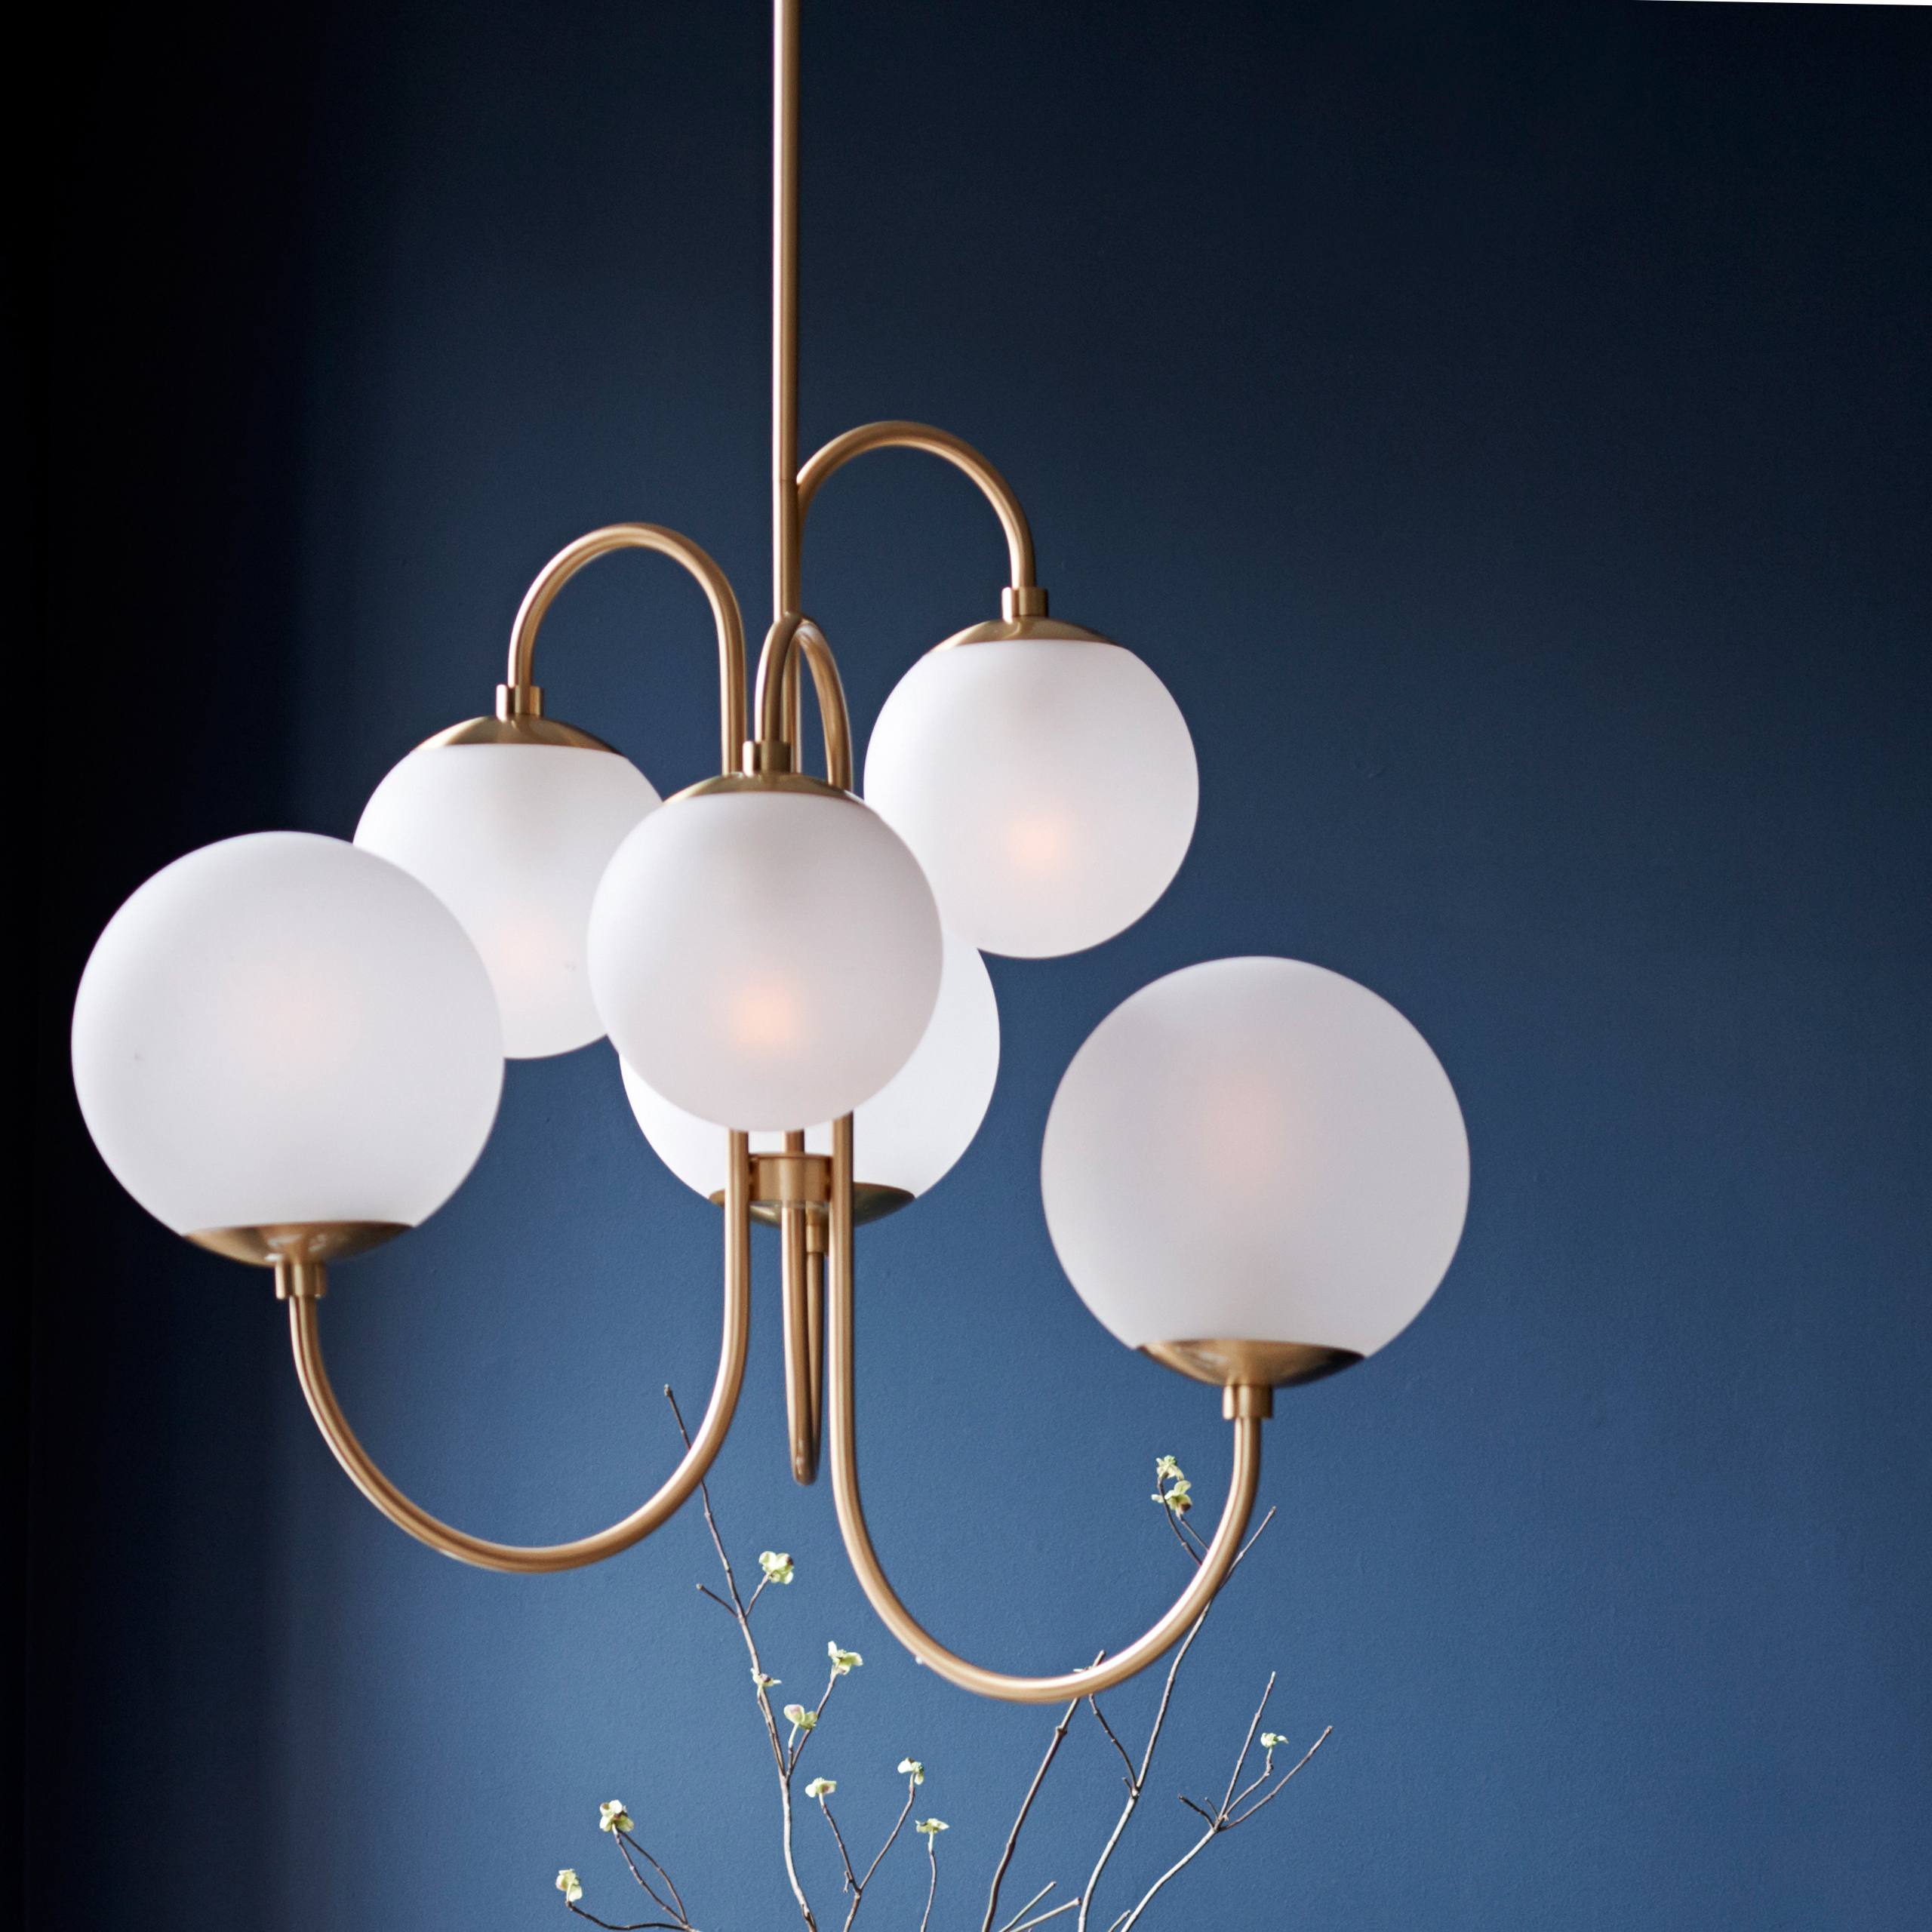 Ideas west elm glass orb chandelier rectangular capiz chandelier william sonoma lighting west elm chandelier west elm pendant aloadofball Image collections